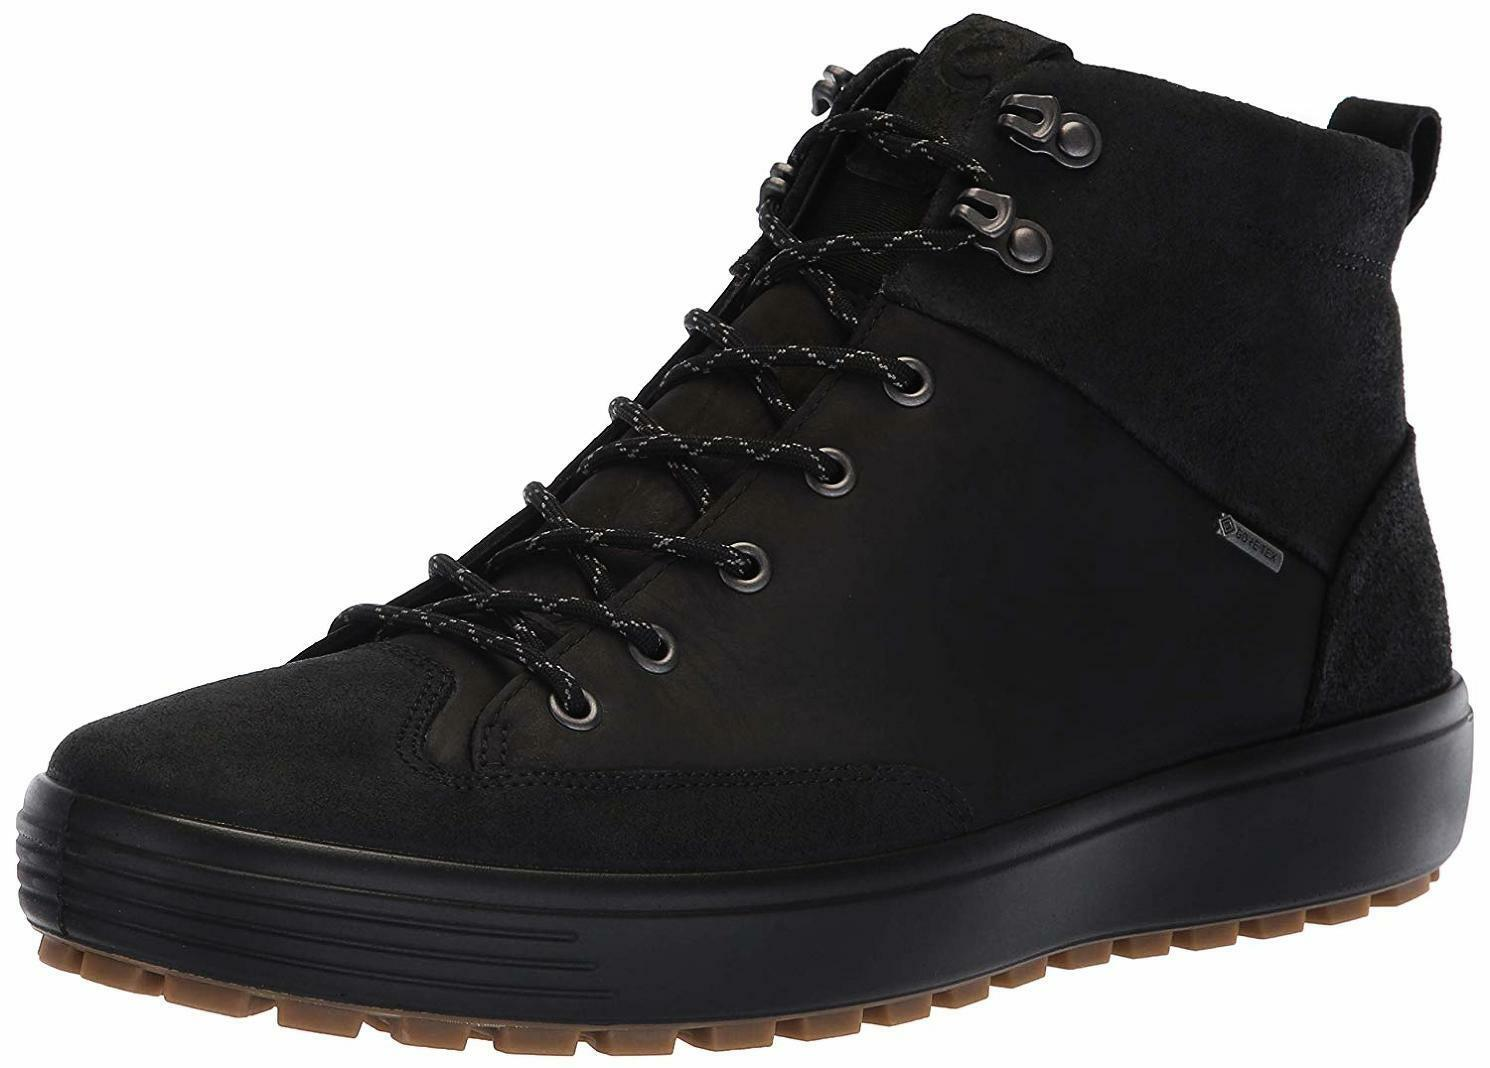 Homme ECCO Soft 7 Trouge High Top Gore-Tex Baskets, - Choisir Taille couleur